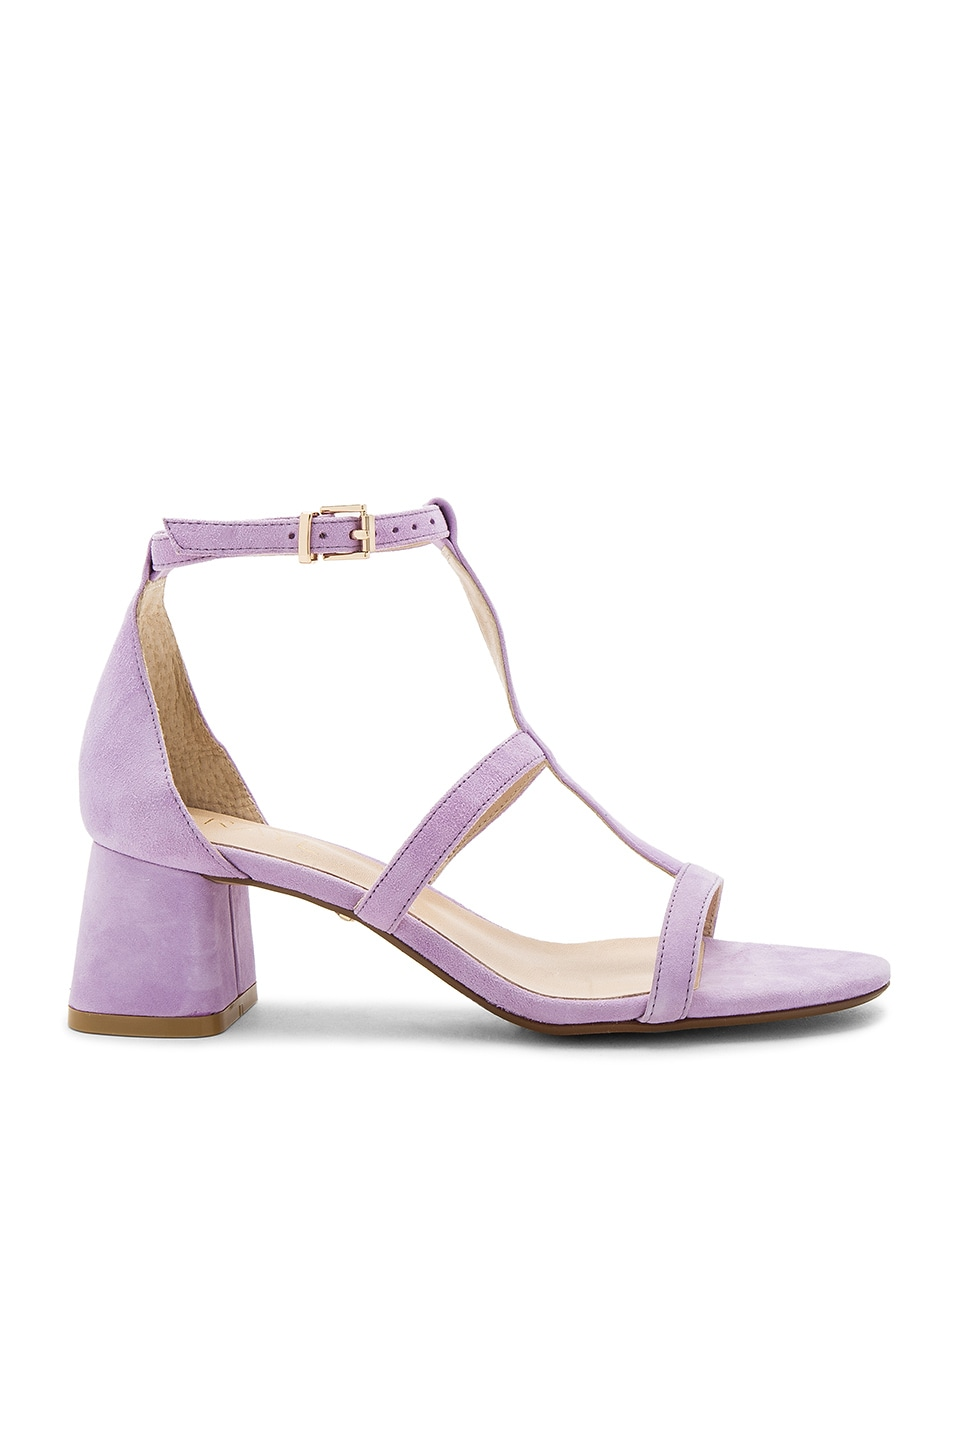 RAYE Aggie Sandal in Lilac Suede